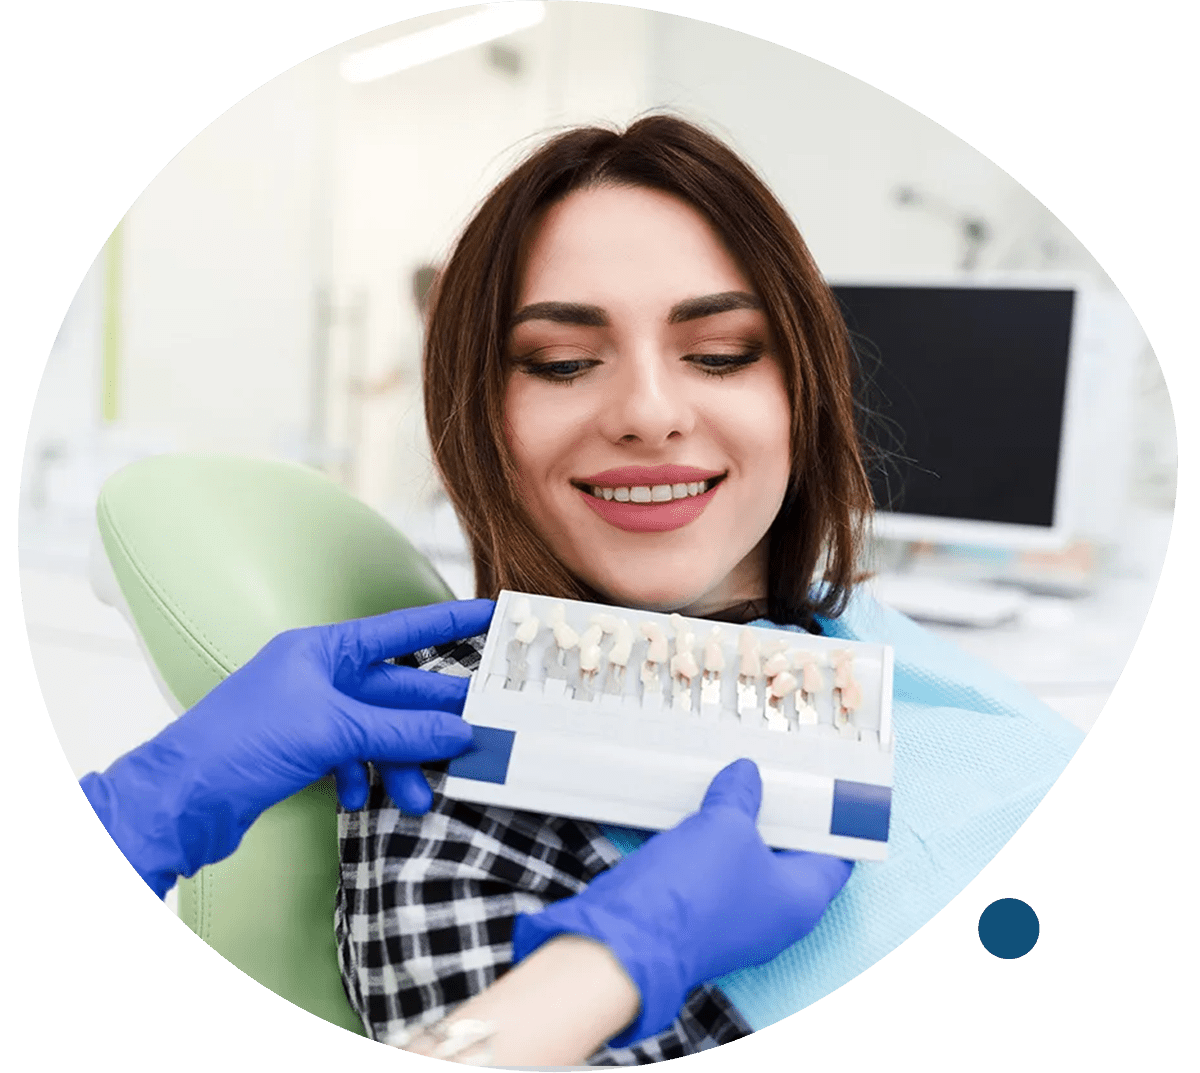 http://lakeshoredentistry.ca/wp-content/uploads/2021/02/home-service-10-min.png